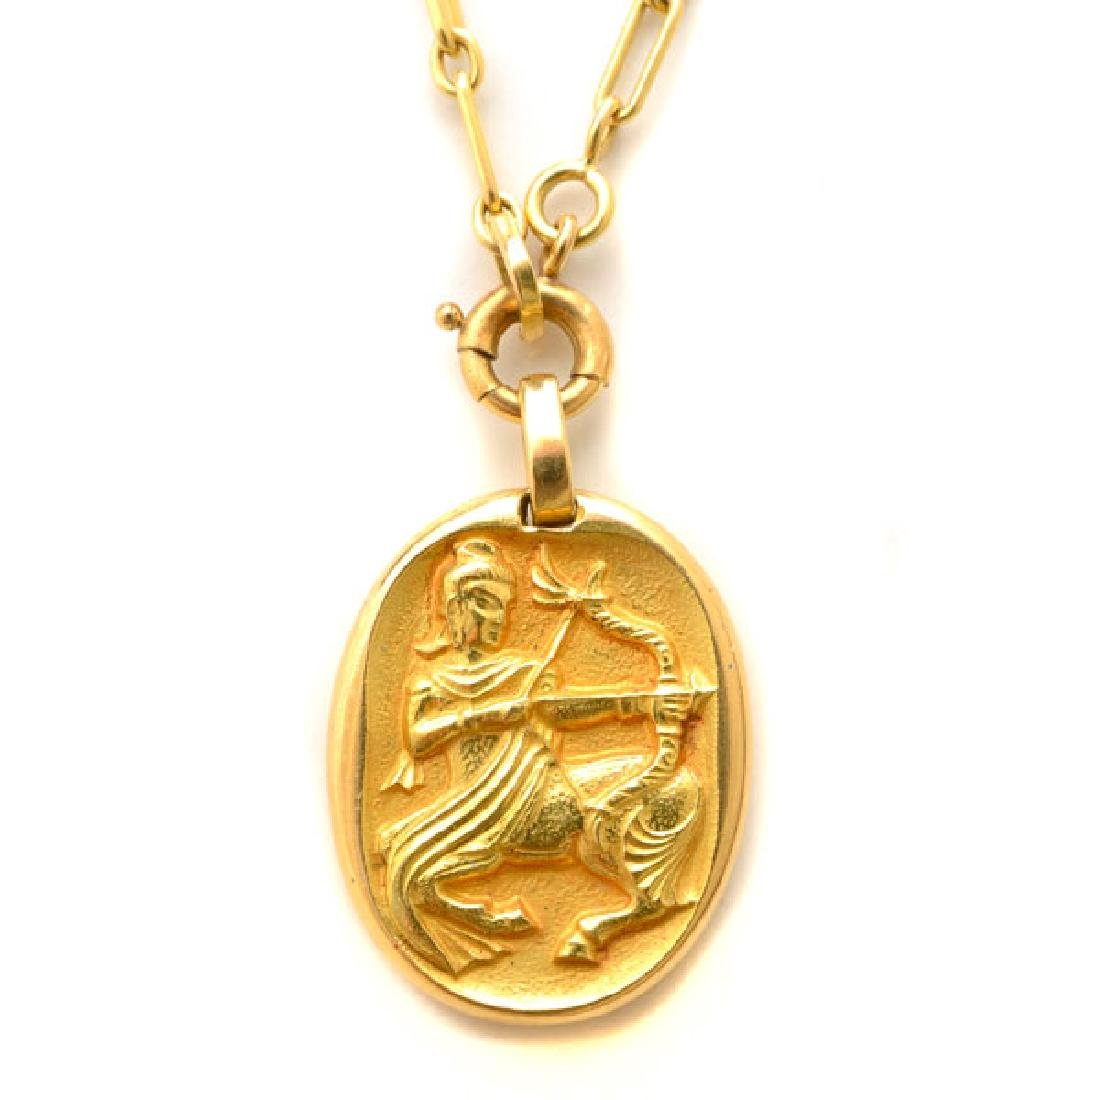 Cartier 18k Yellow Gold Sagittarius Pendant Necklace.